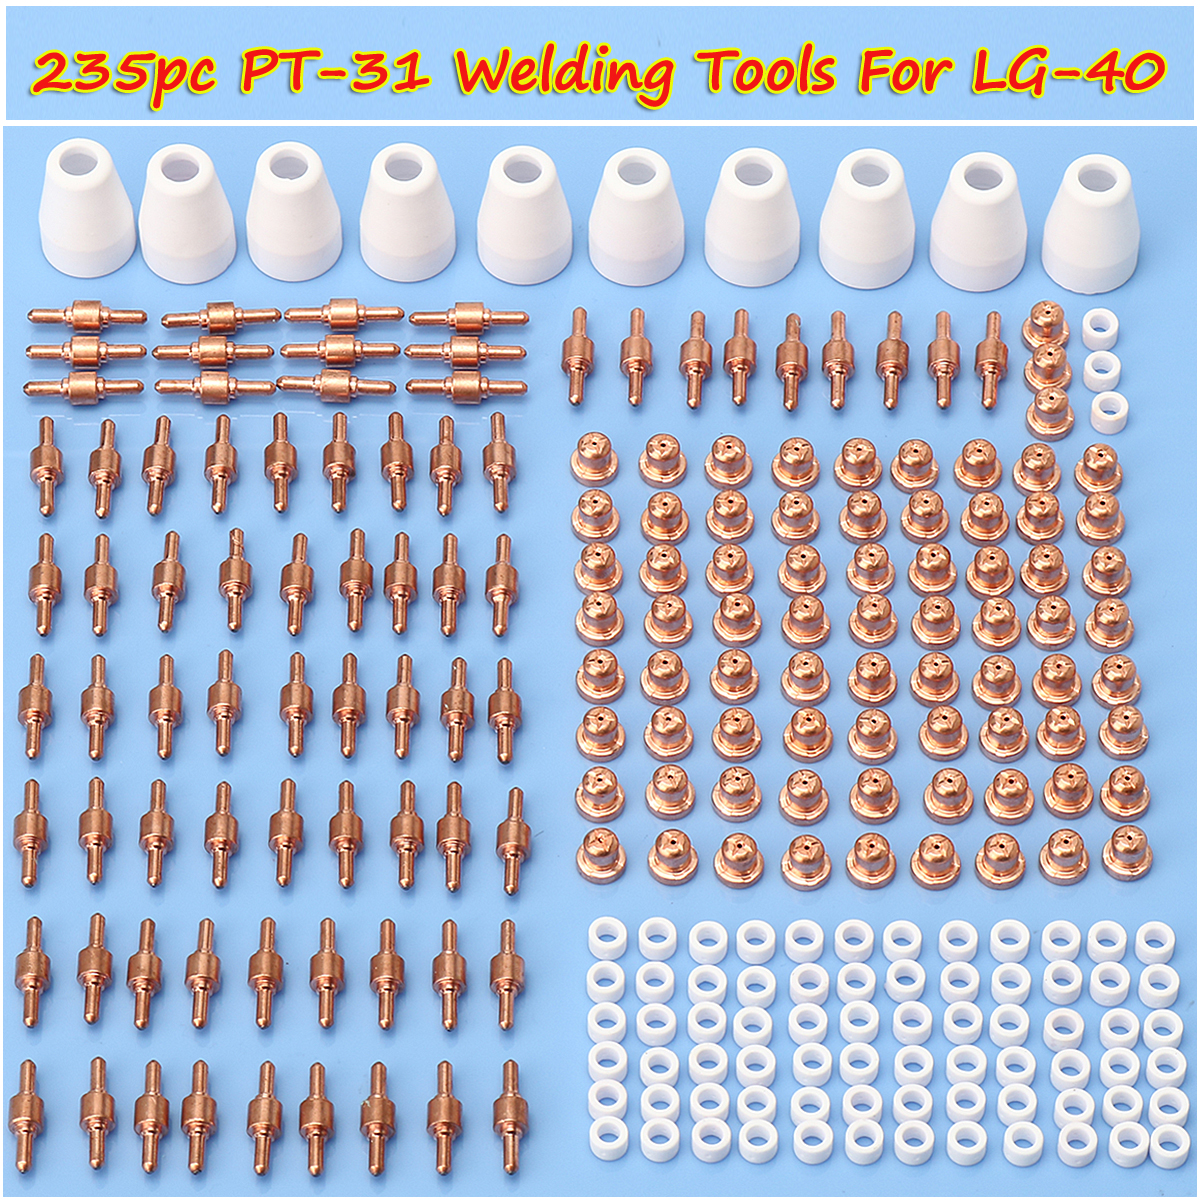 235pc Ceramic + Metal Air Plasma Cutting Cutter Consumables Extended TIP Nozzle Electrode For CUT 50D CT 312